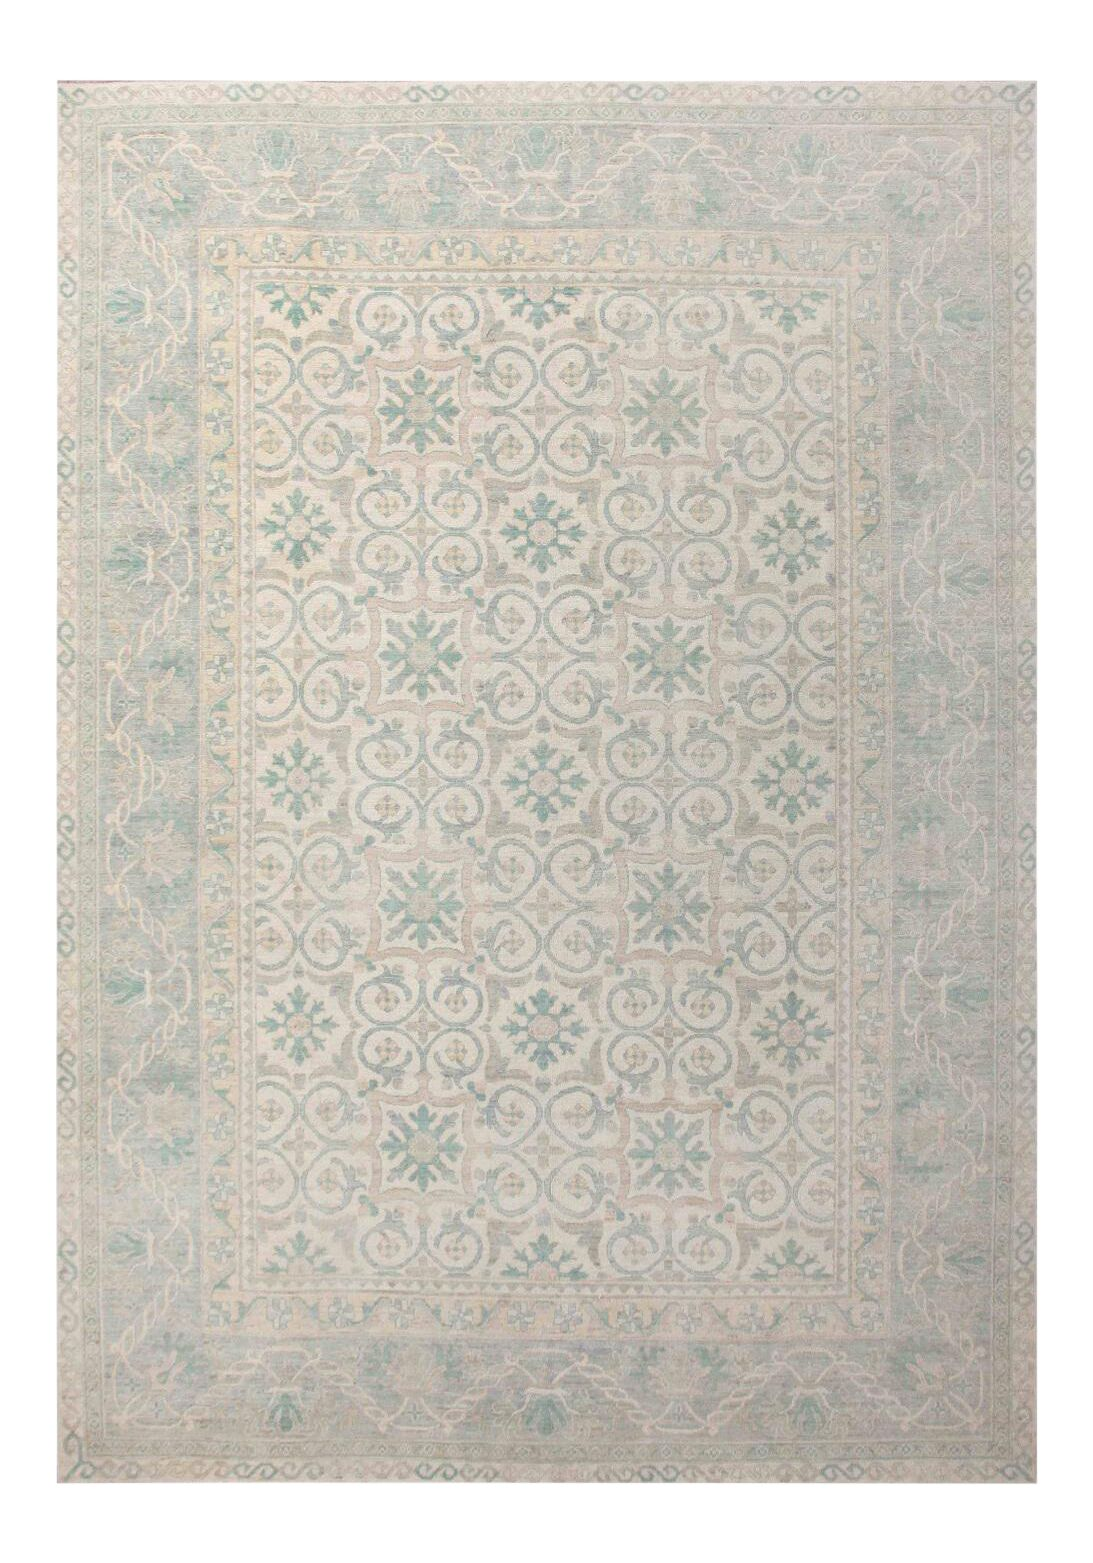 Turkish Oushak Design Hand Knotted Wool Light Blue Area Rug